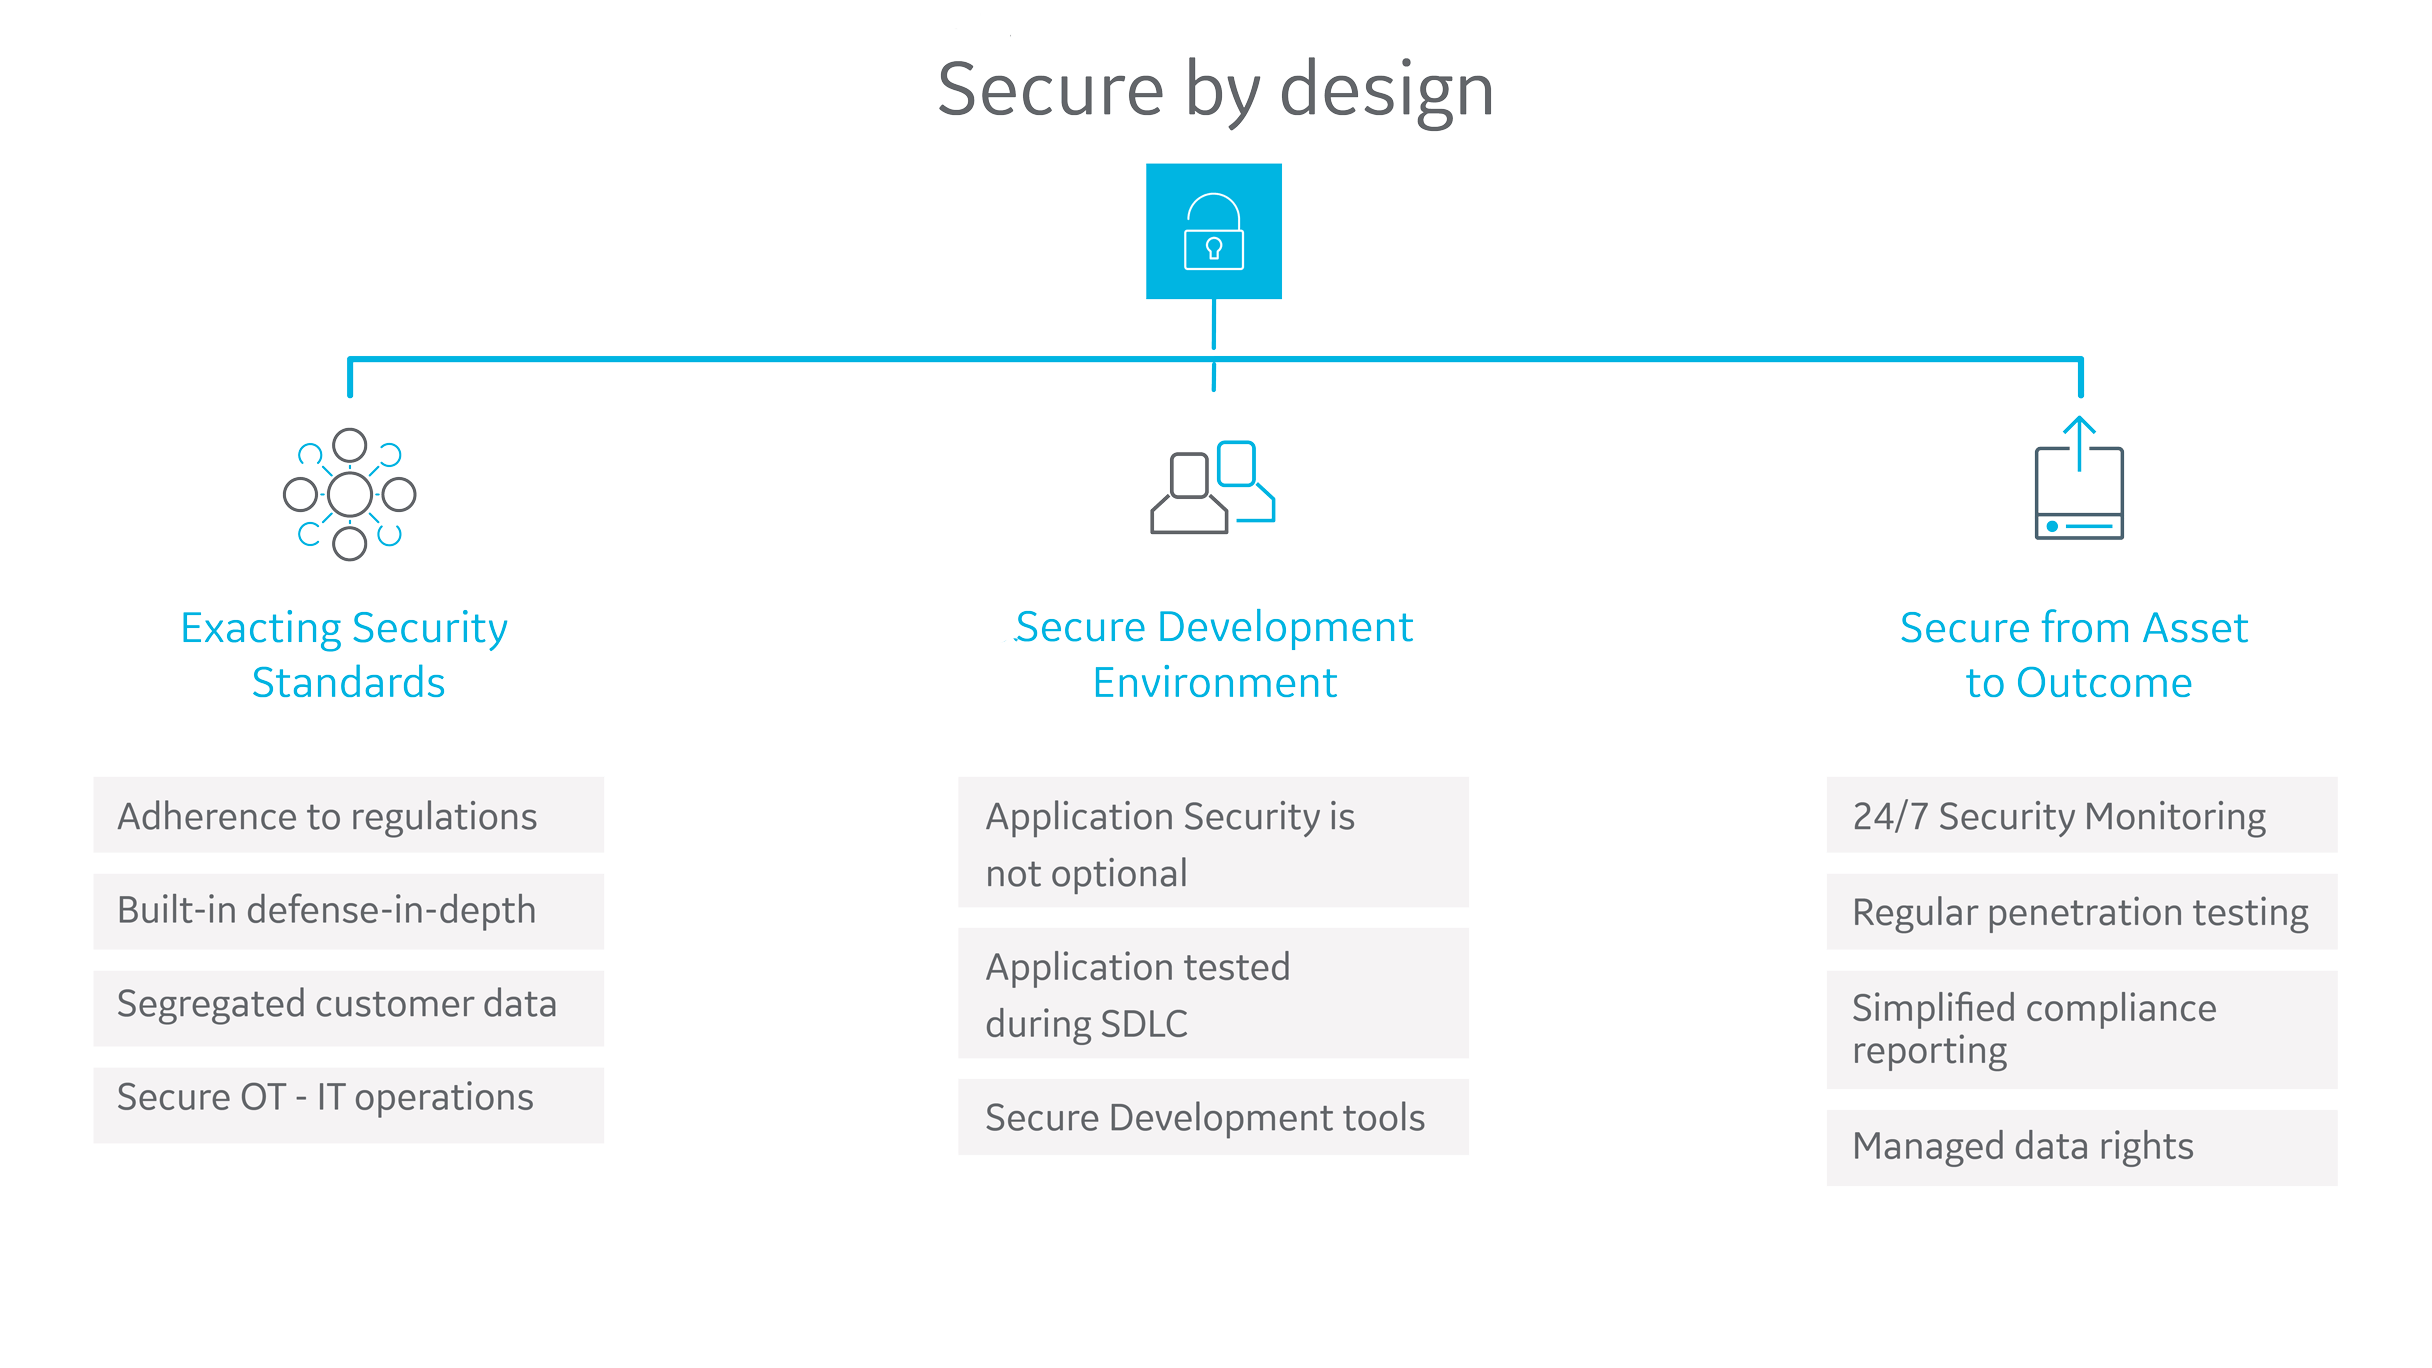 GE Digital's applications are secure by designGE Digital's applications are secure by design